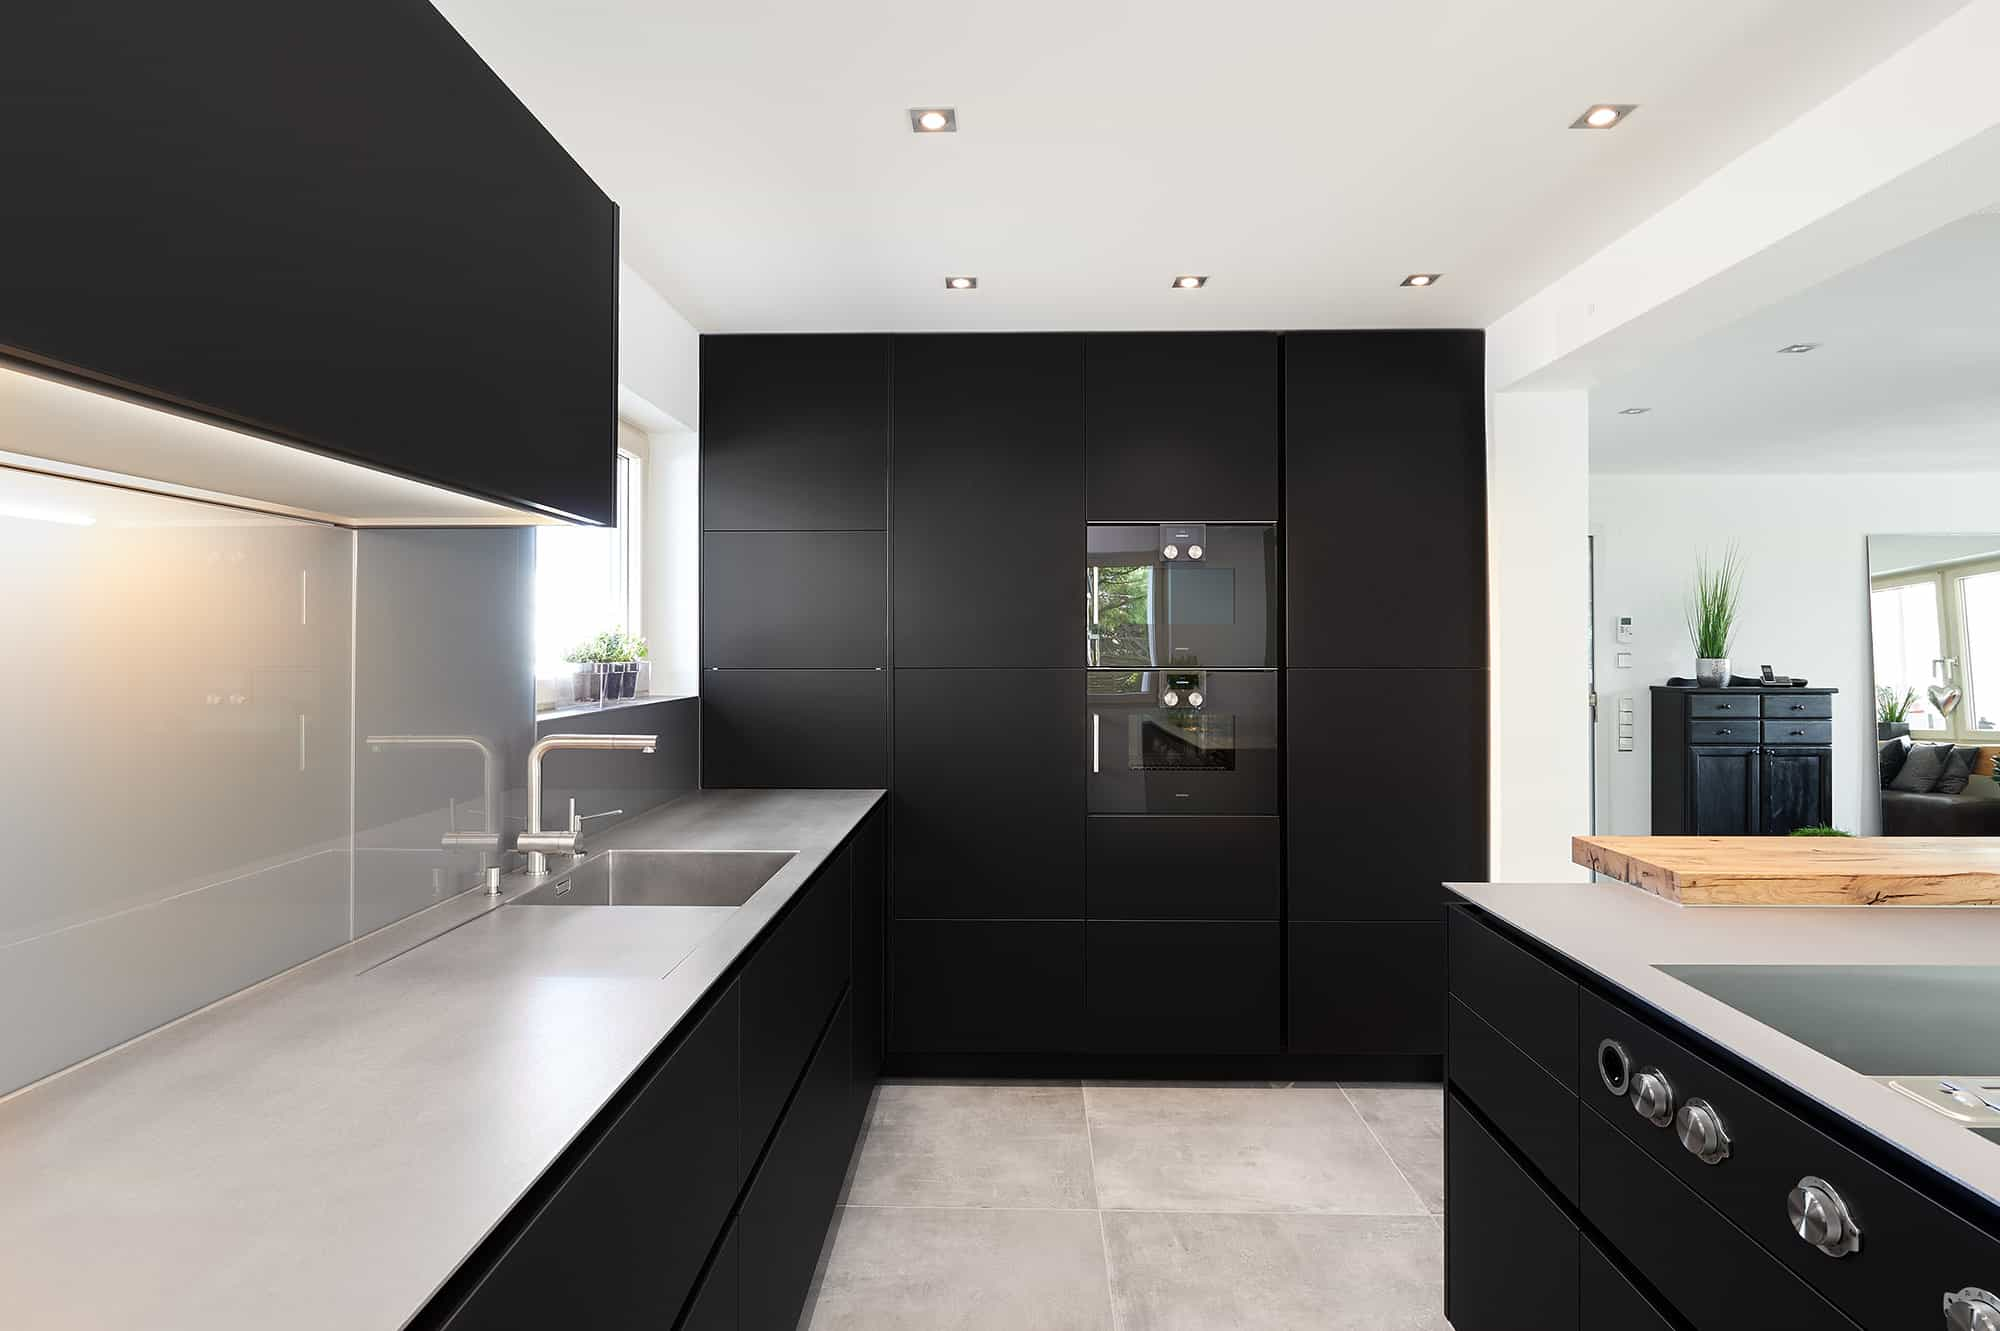 Hot Rolled Stainless steel worktop with Nano Black